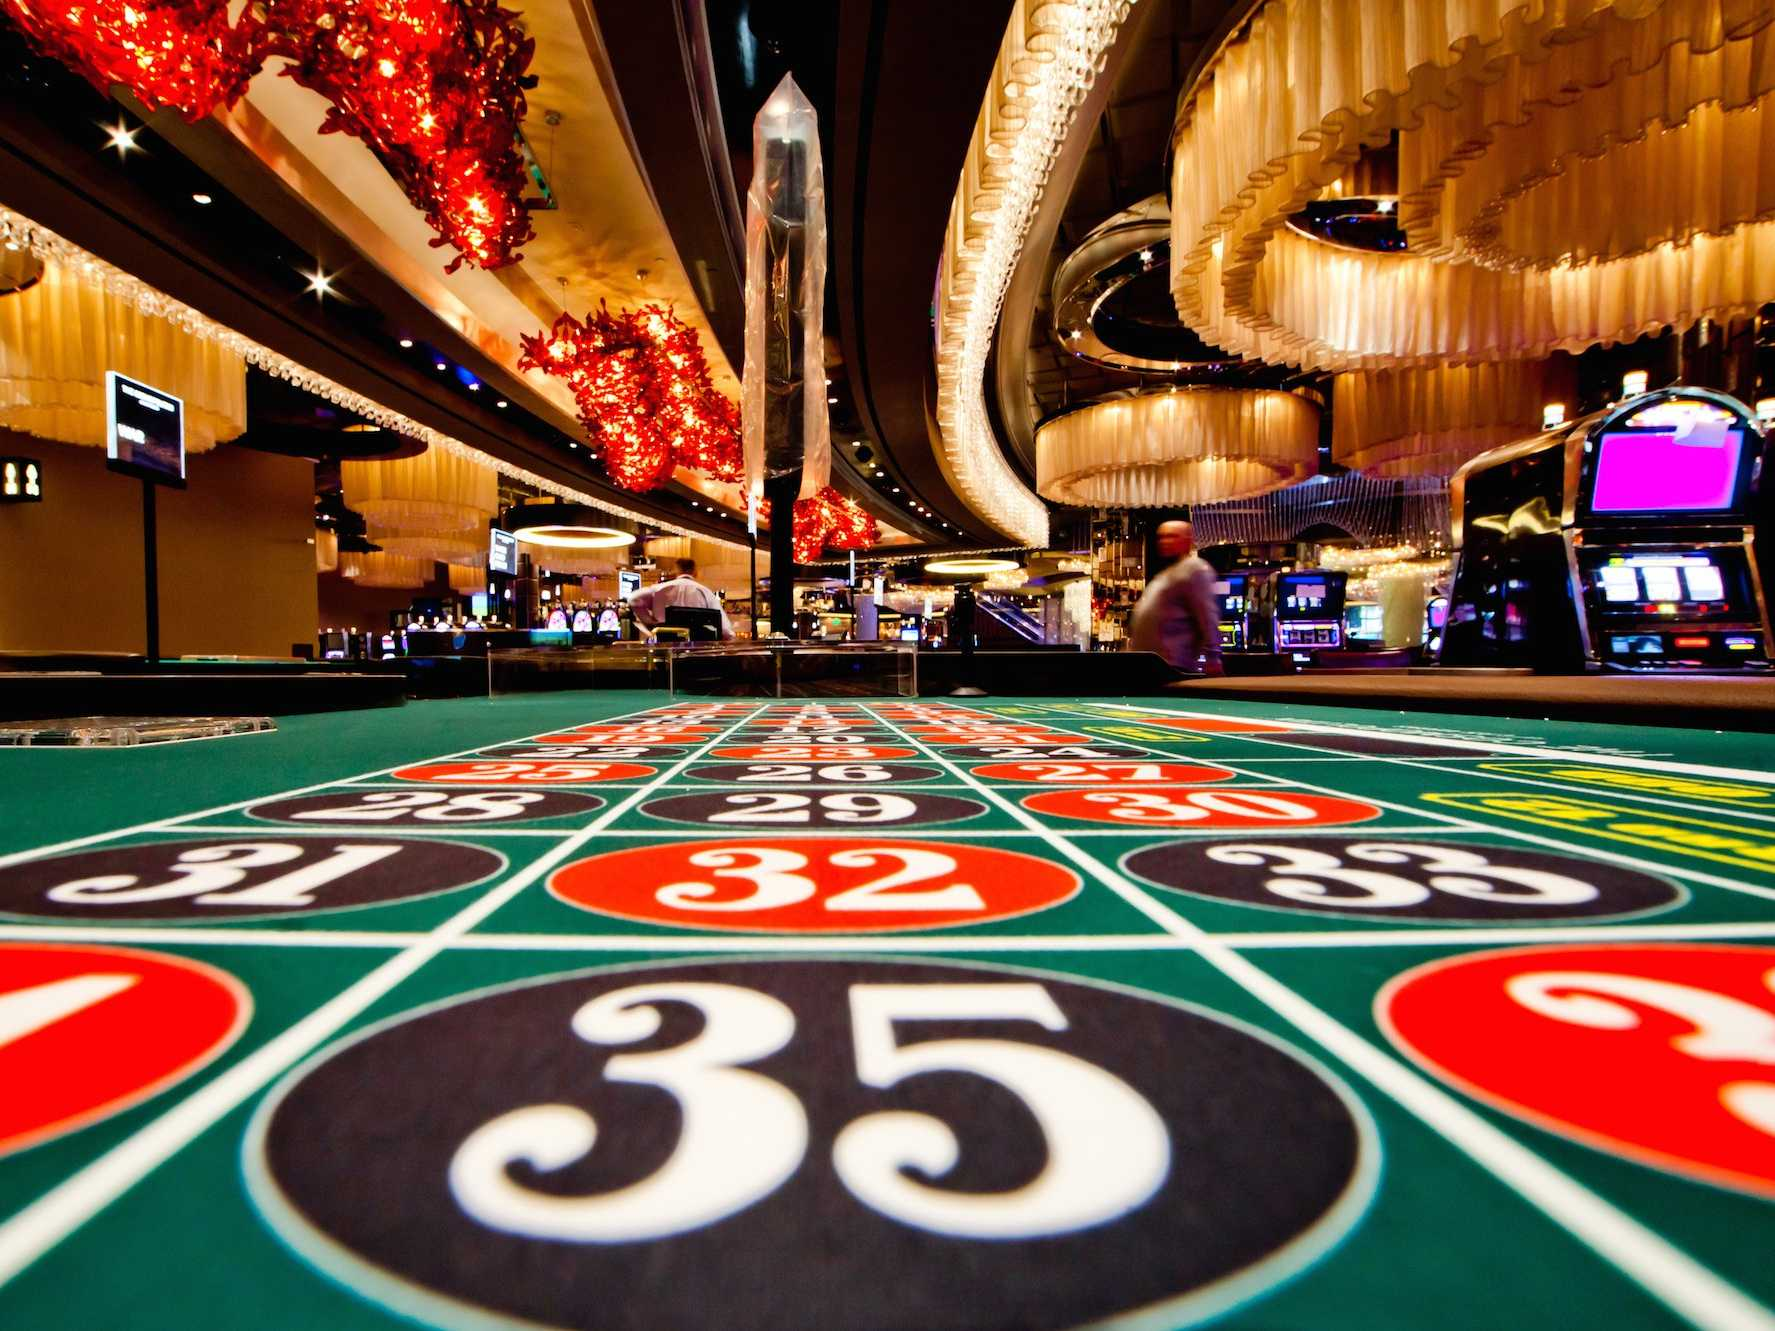 Get more information about the casino games by contacting the support team on our website